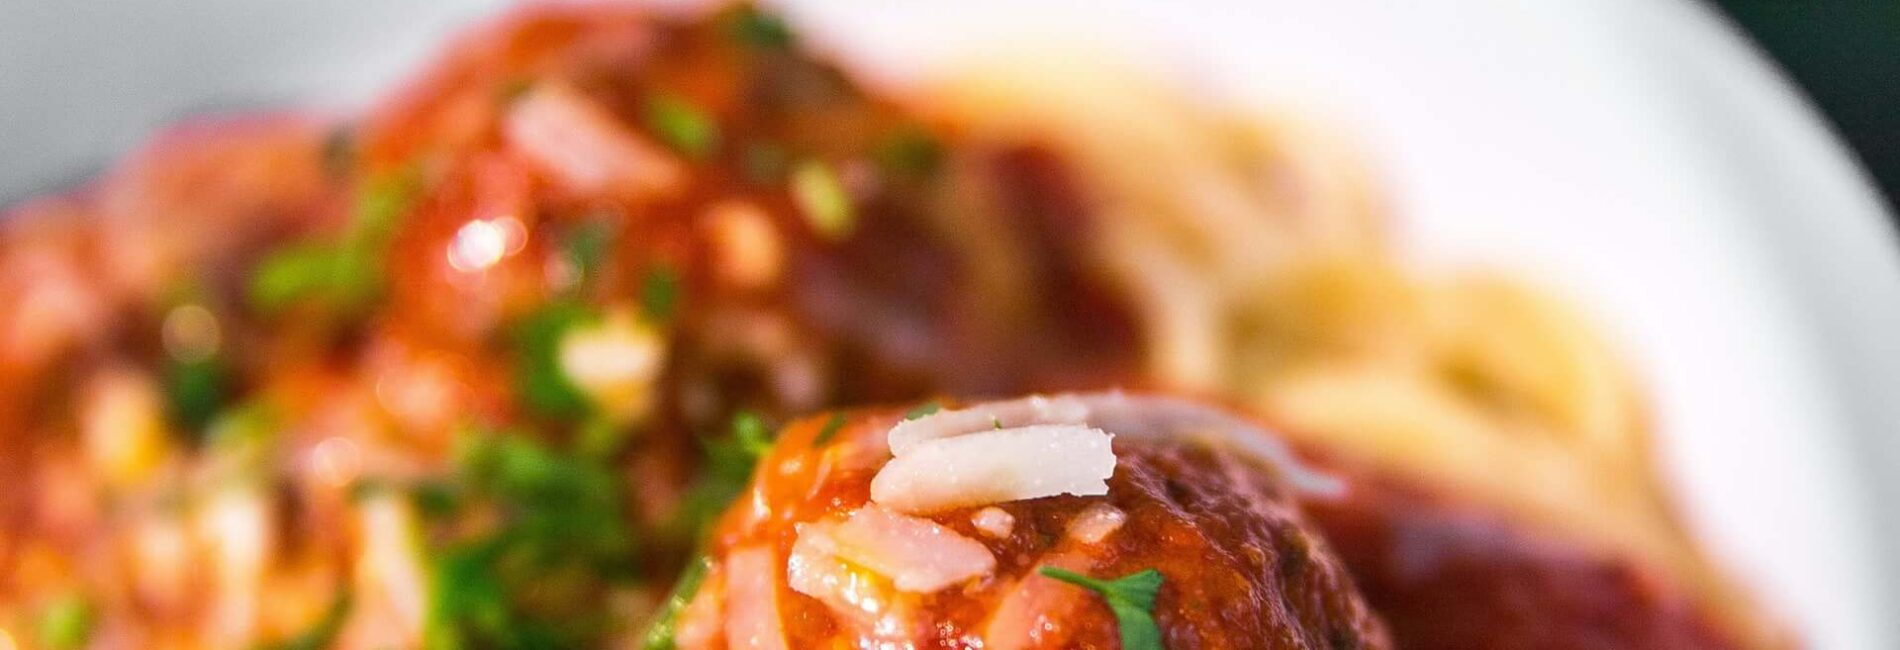 Meatballs in Sweet & Spicy Sauce – Great Super Bowl Appetizer